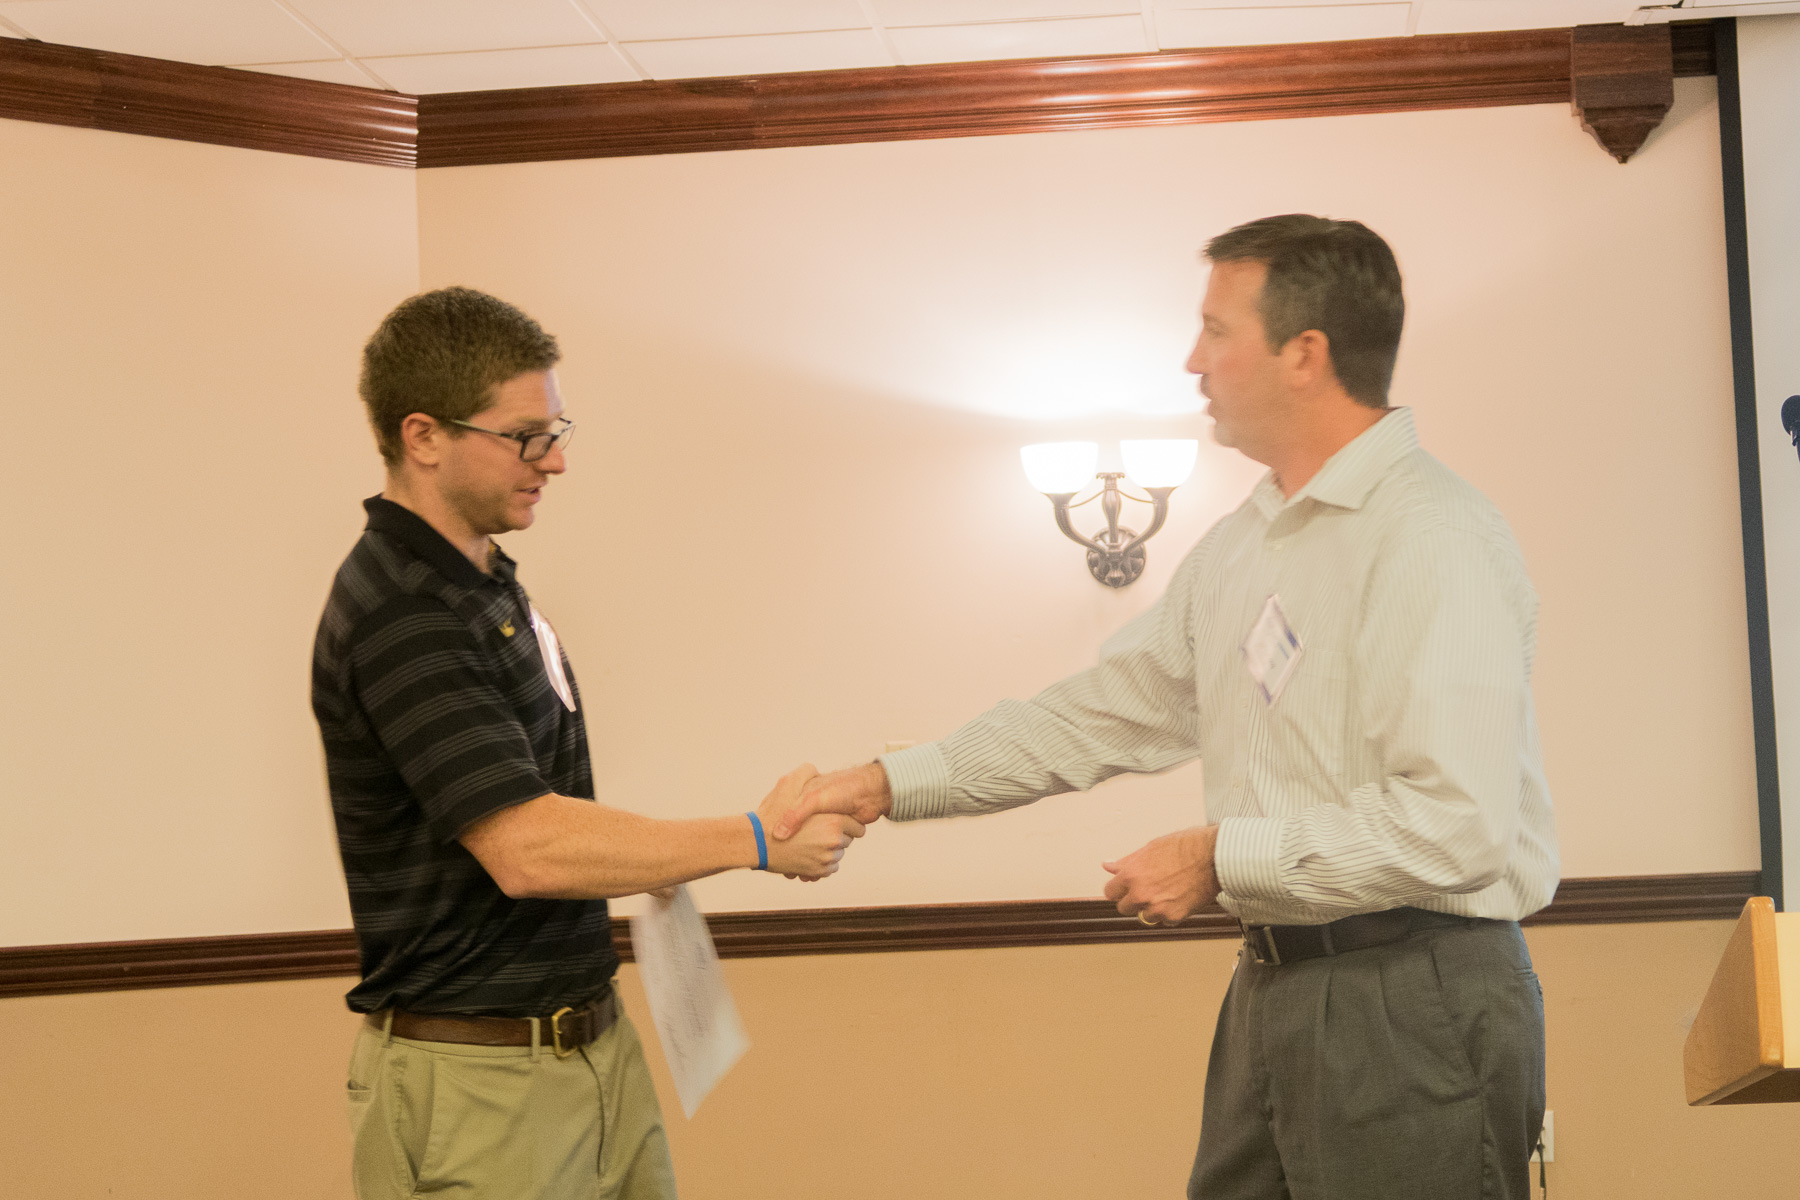 Scott Hacker, receiving 2nd Place - Student Activities